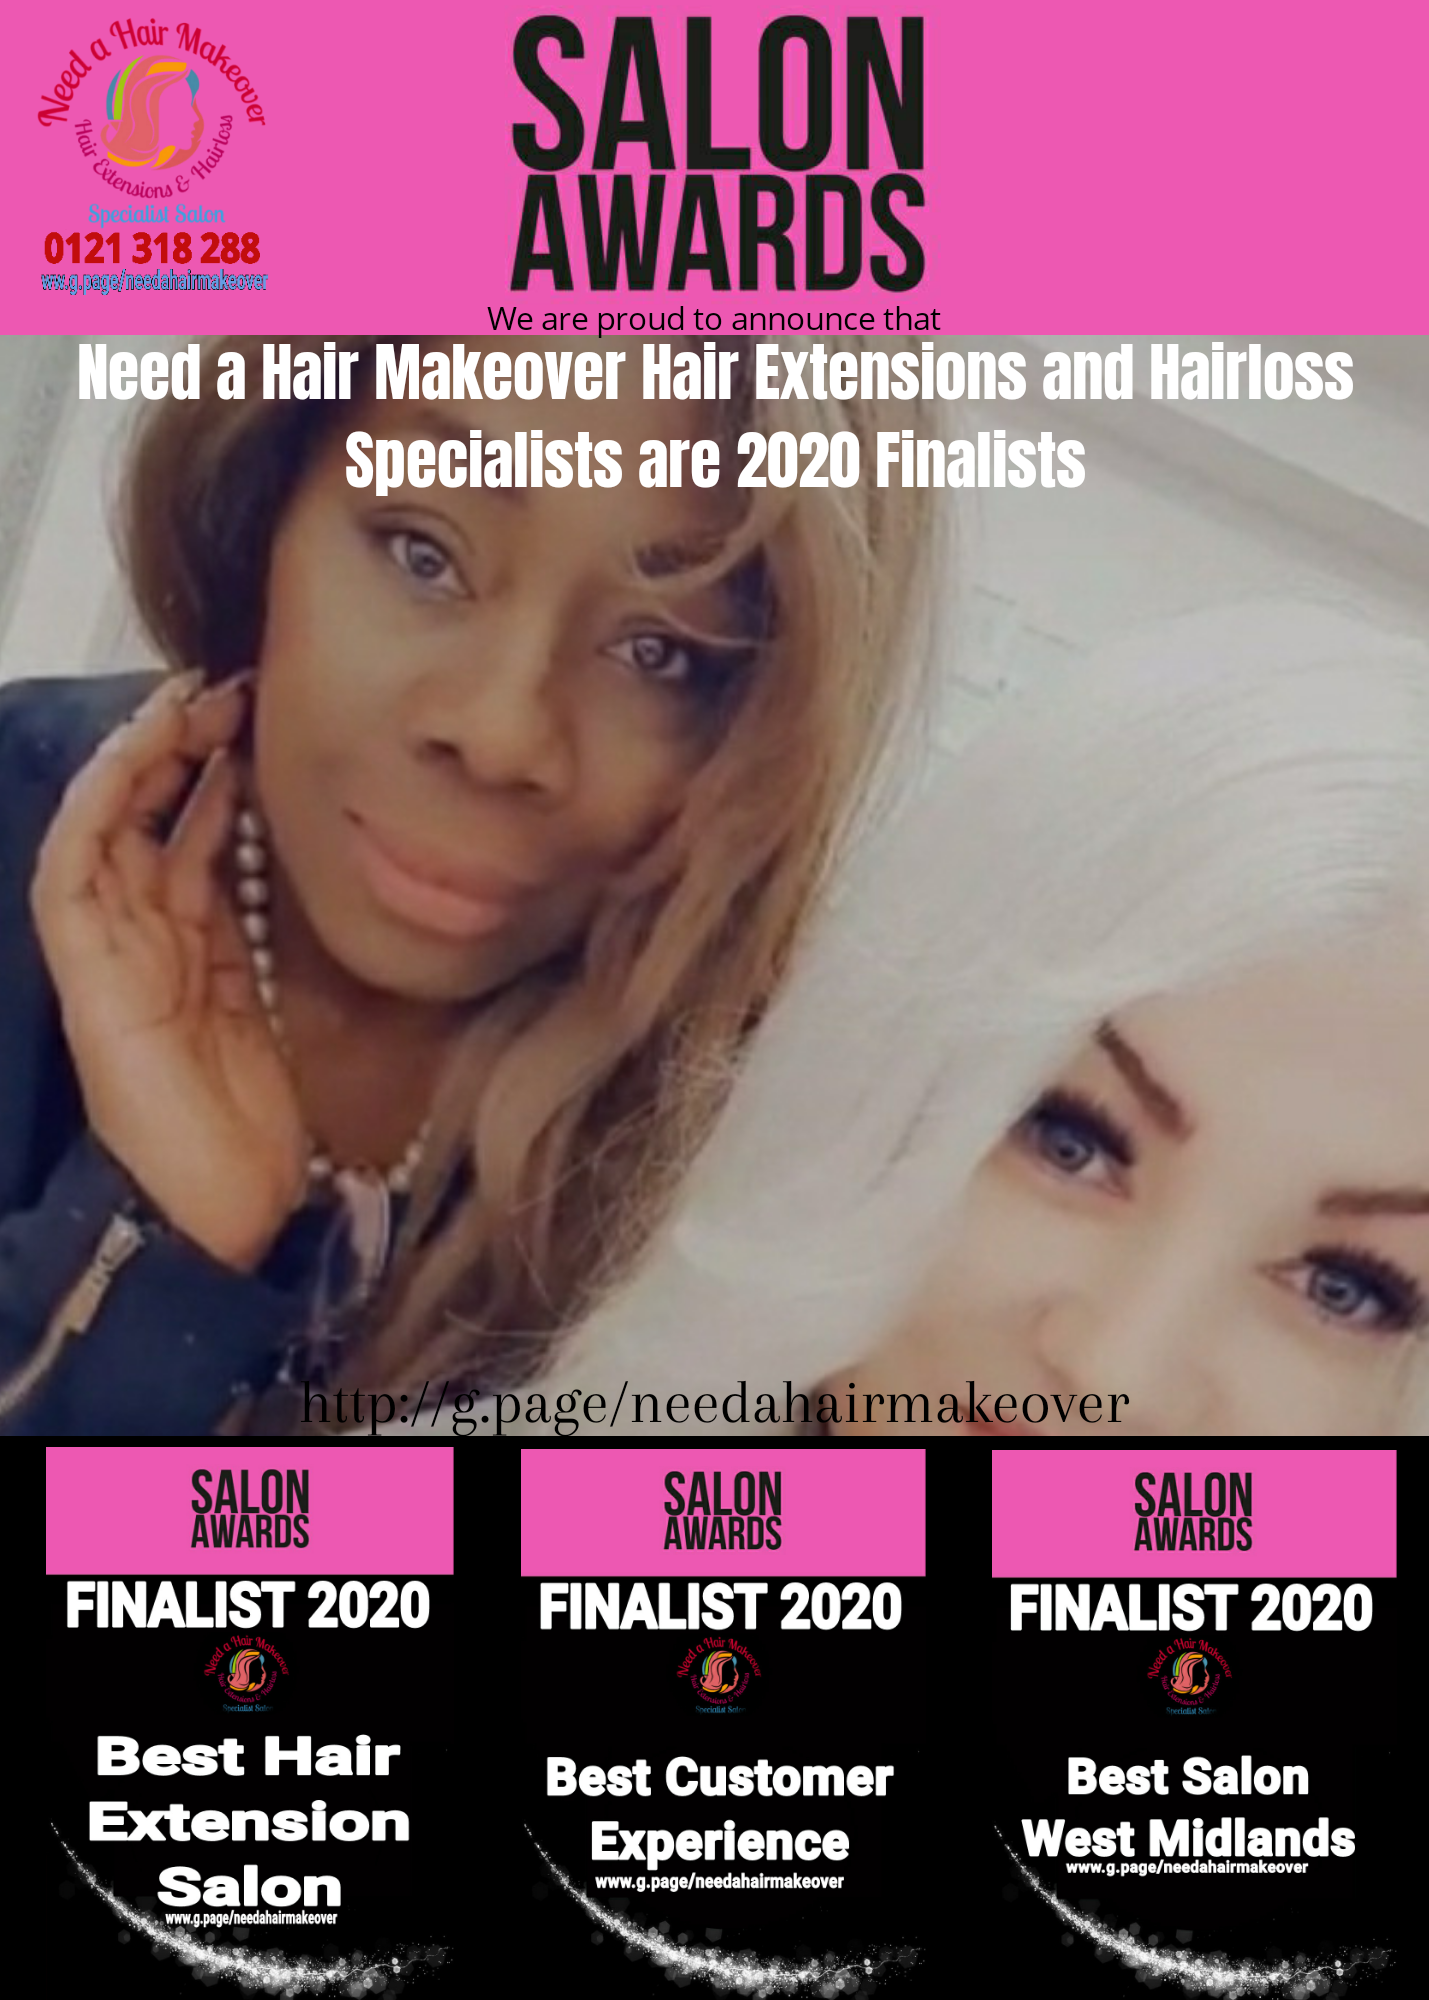 salon awards need a hair makeover 2021